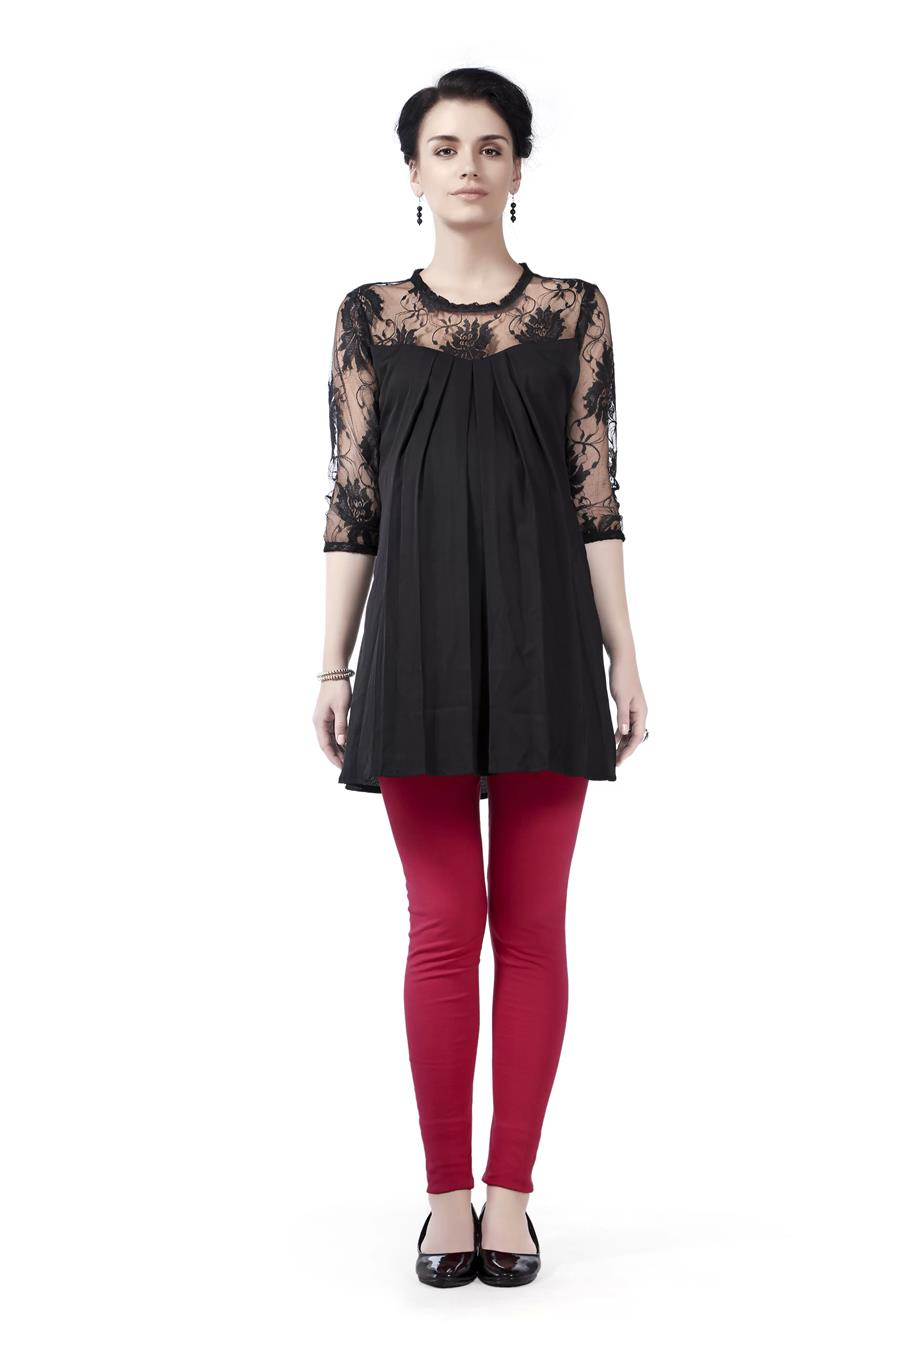 Innovative presents Lace Yoke and Sleeve Maternity Tunic Top